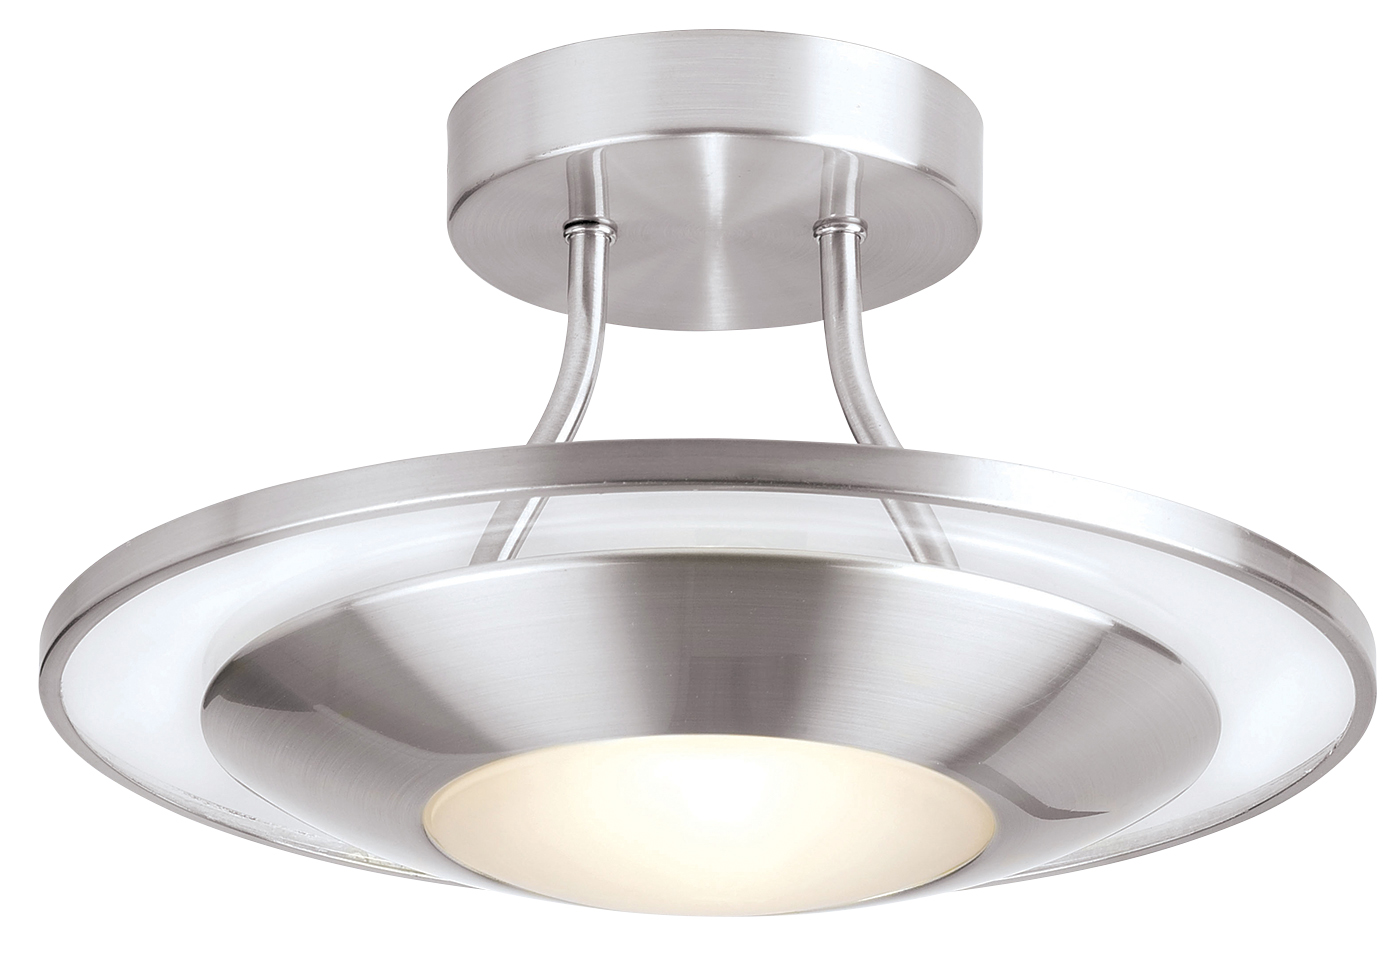 Endon Firenz semi flush ceiling light 120W Satin chrome clear & frosted glass Thumbnail 1